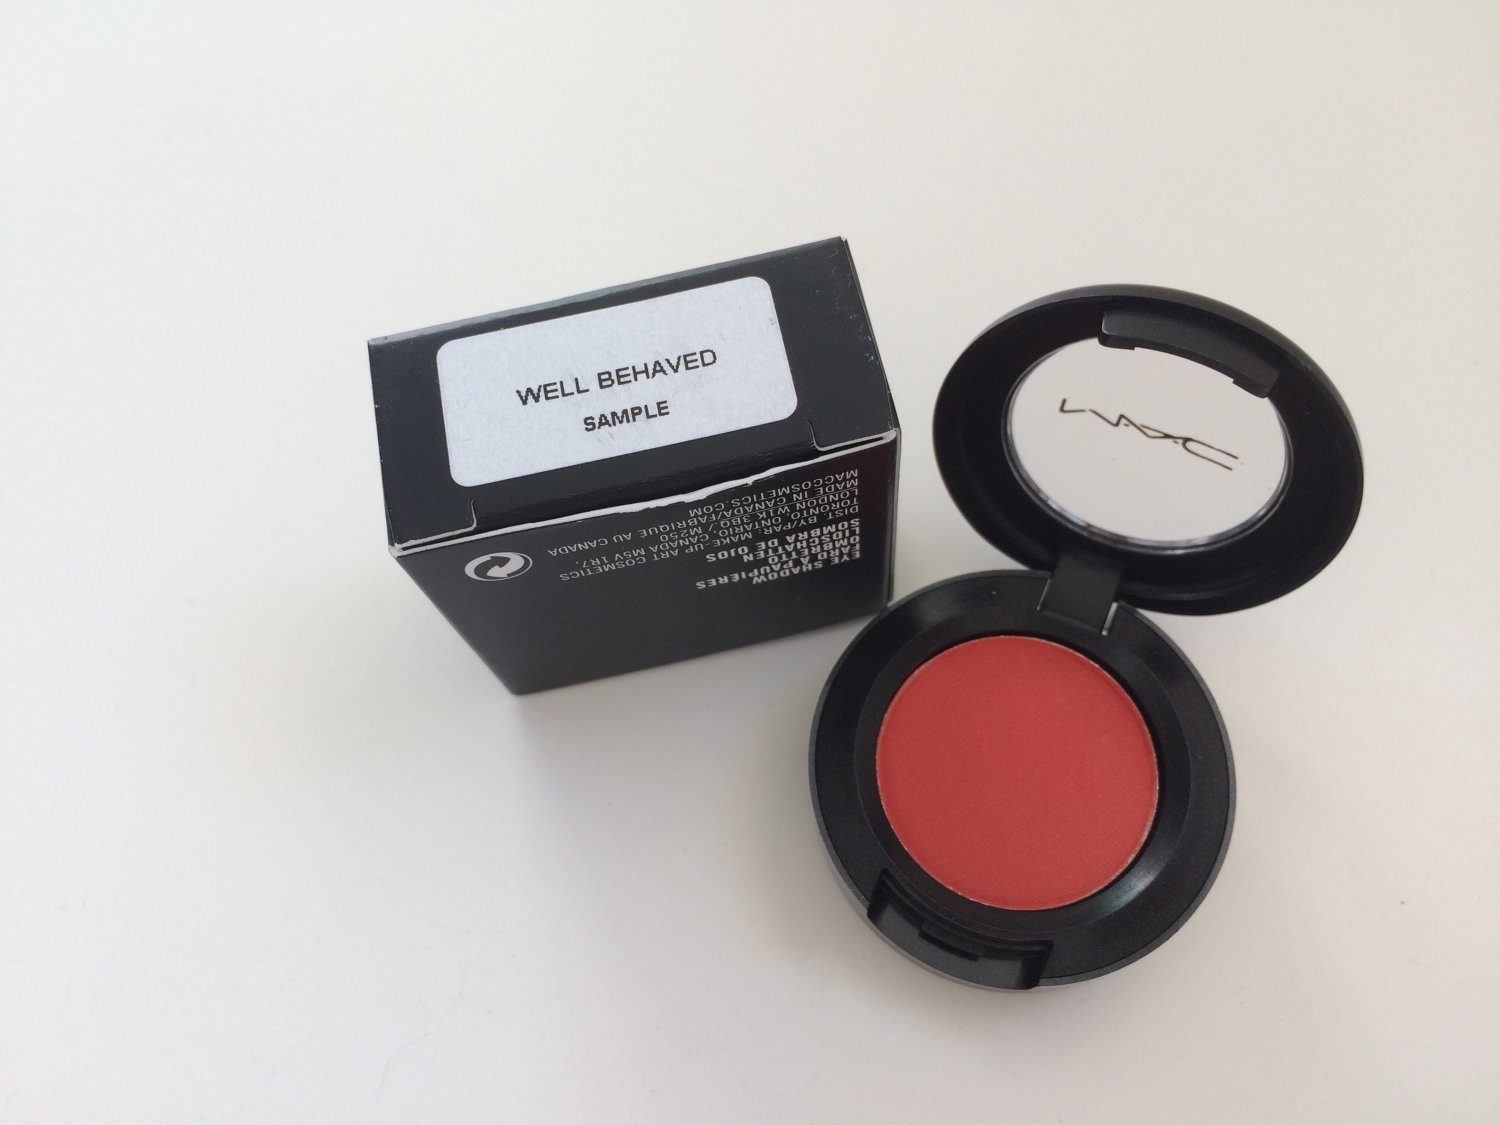 MAC Macnificent Me Eye Shadow - Well Behaved  -  Free USA Shipping